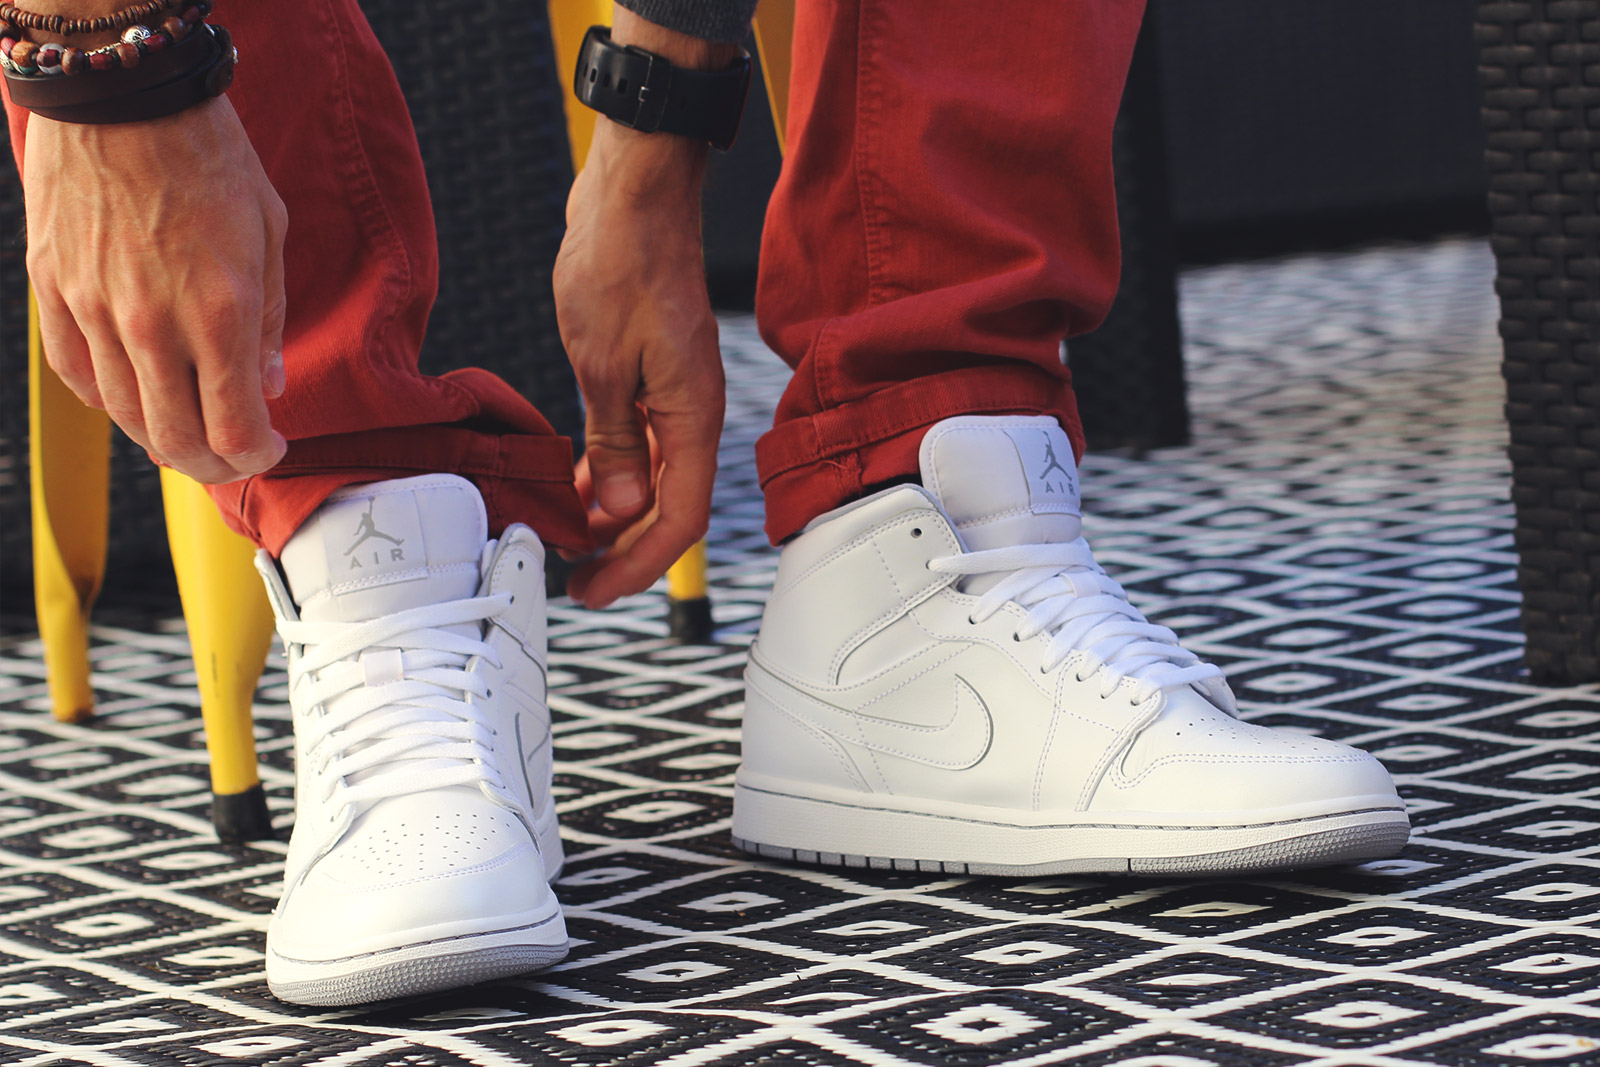 Chaussures Nike Jordan Blanches